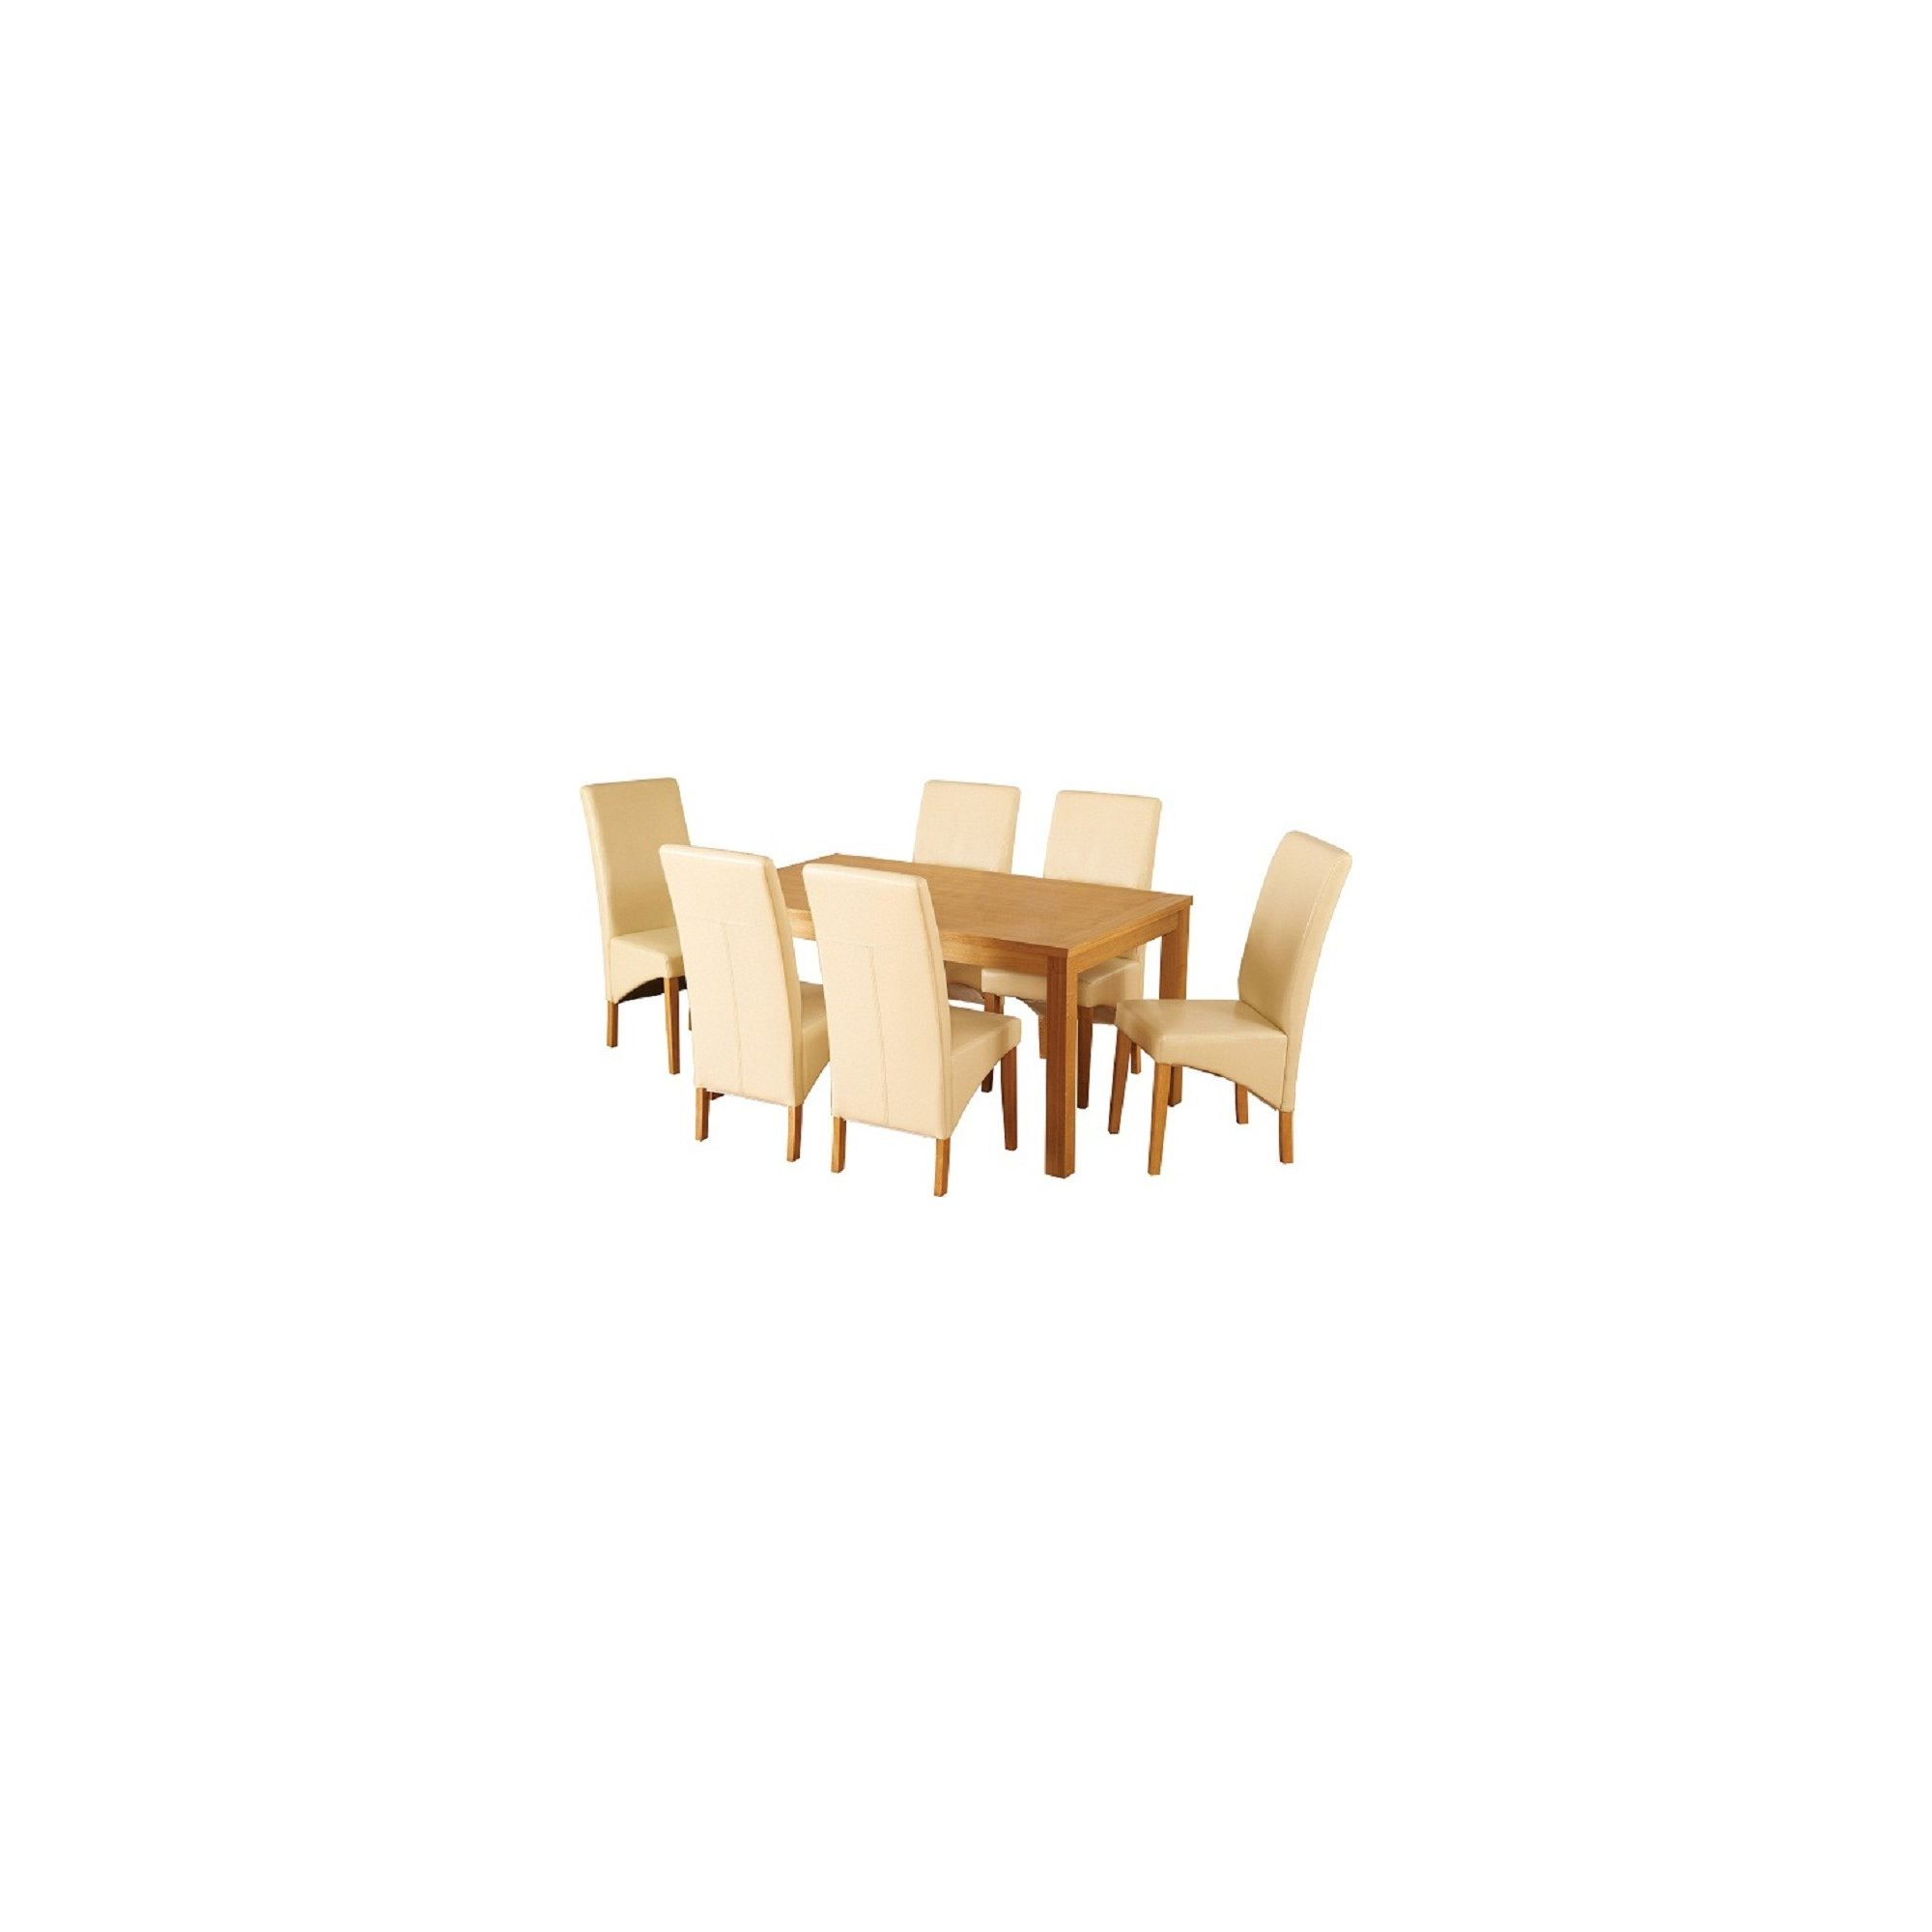 Home Essence Belgravia 7 Piece Dining Set - Cream at Tesco Direct